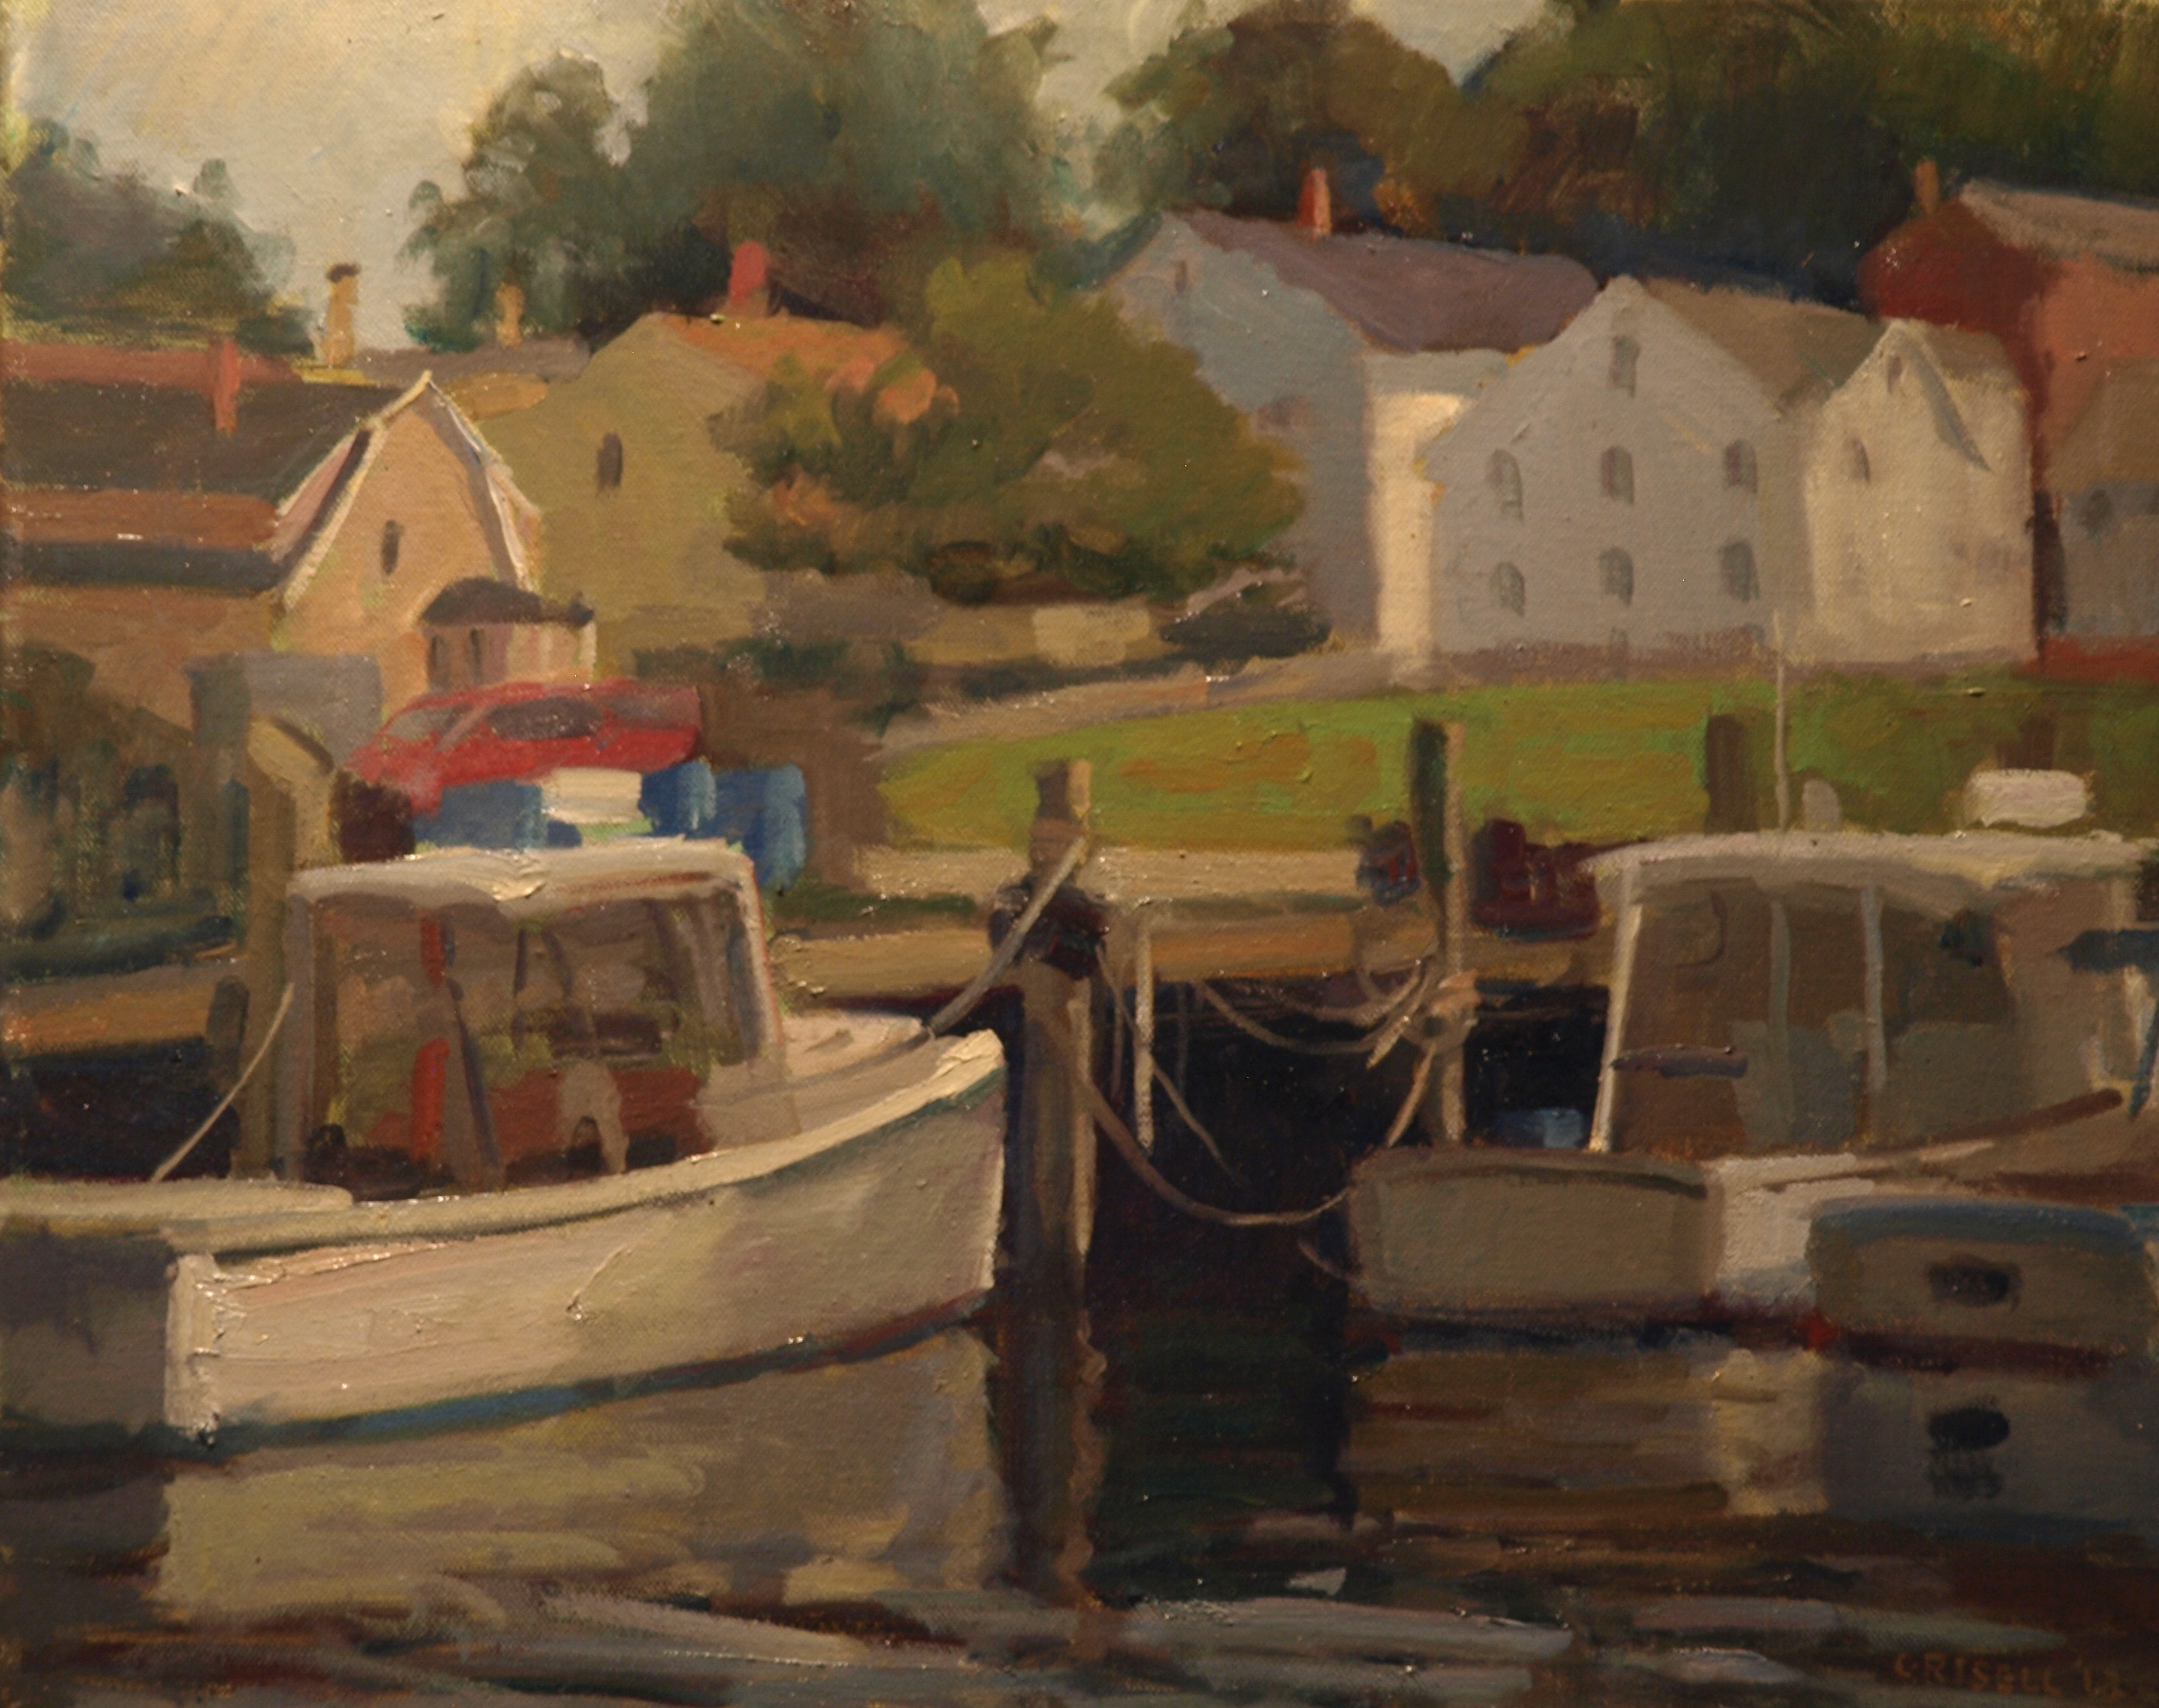 Stonington Harbor, Oil on Canvas, 16 x 20 Inches, by Susan Grisell, $450